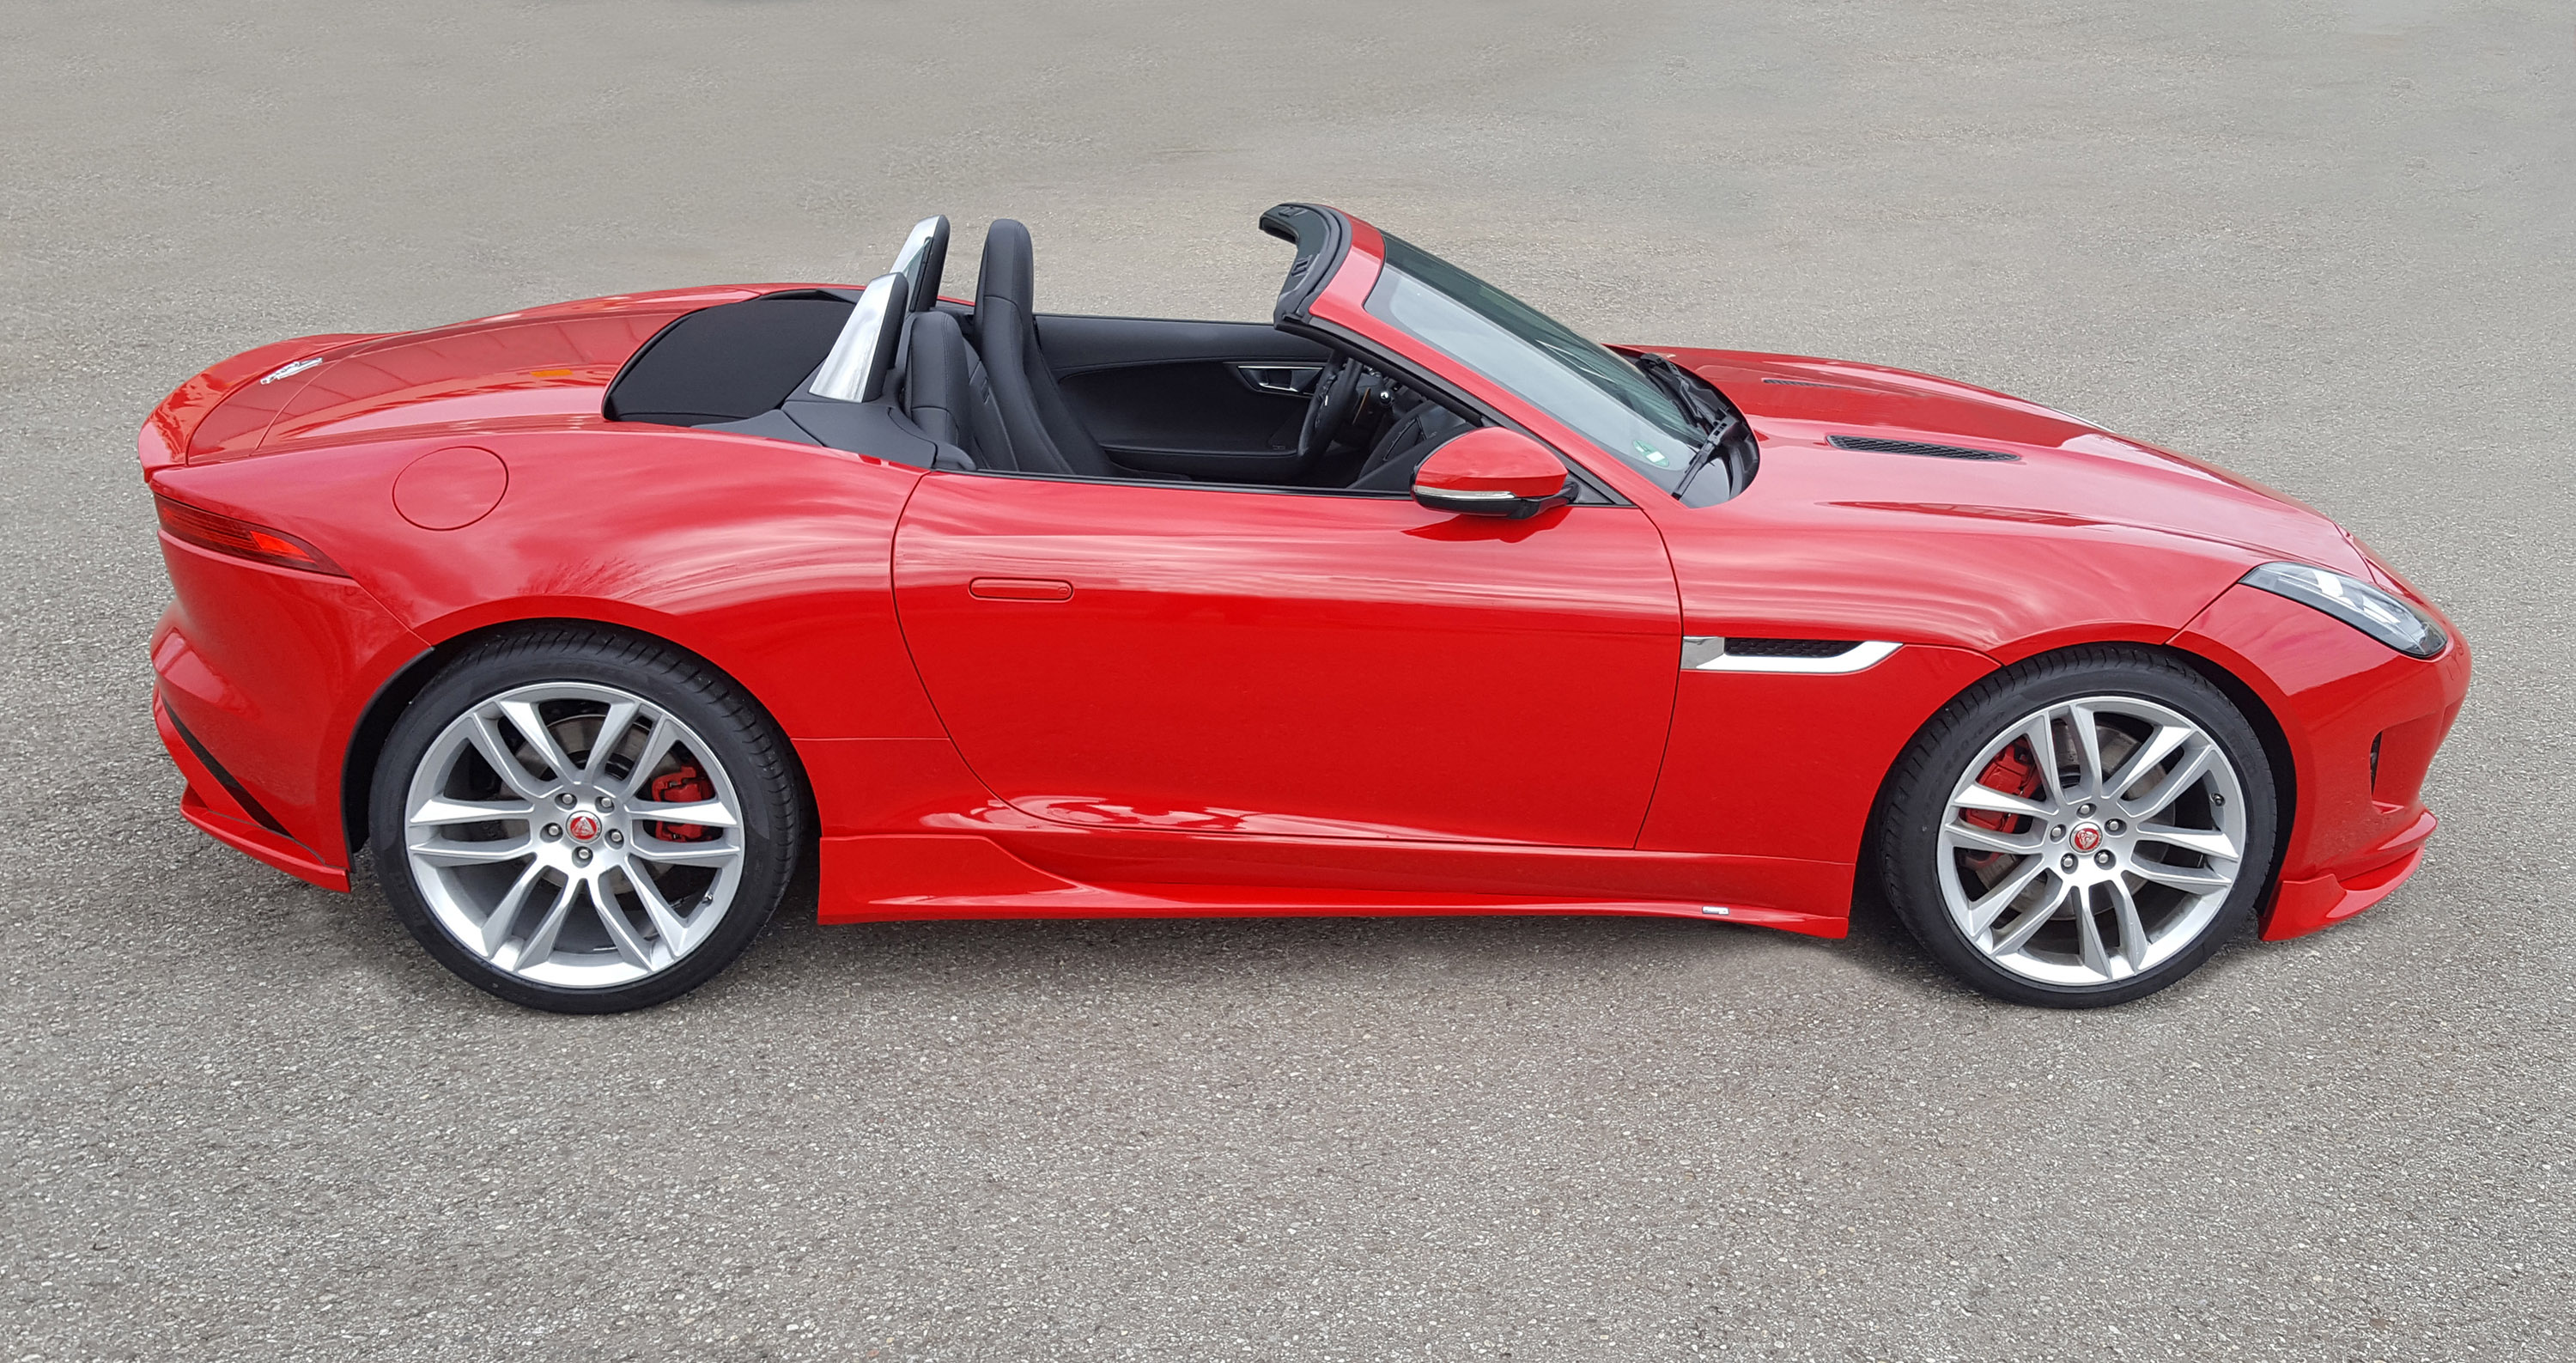 Black Car Wallpapers For Mobile Piecha Introduces Revisions For Jaguar F Type Cabrio